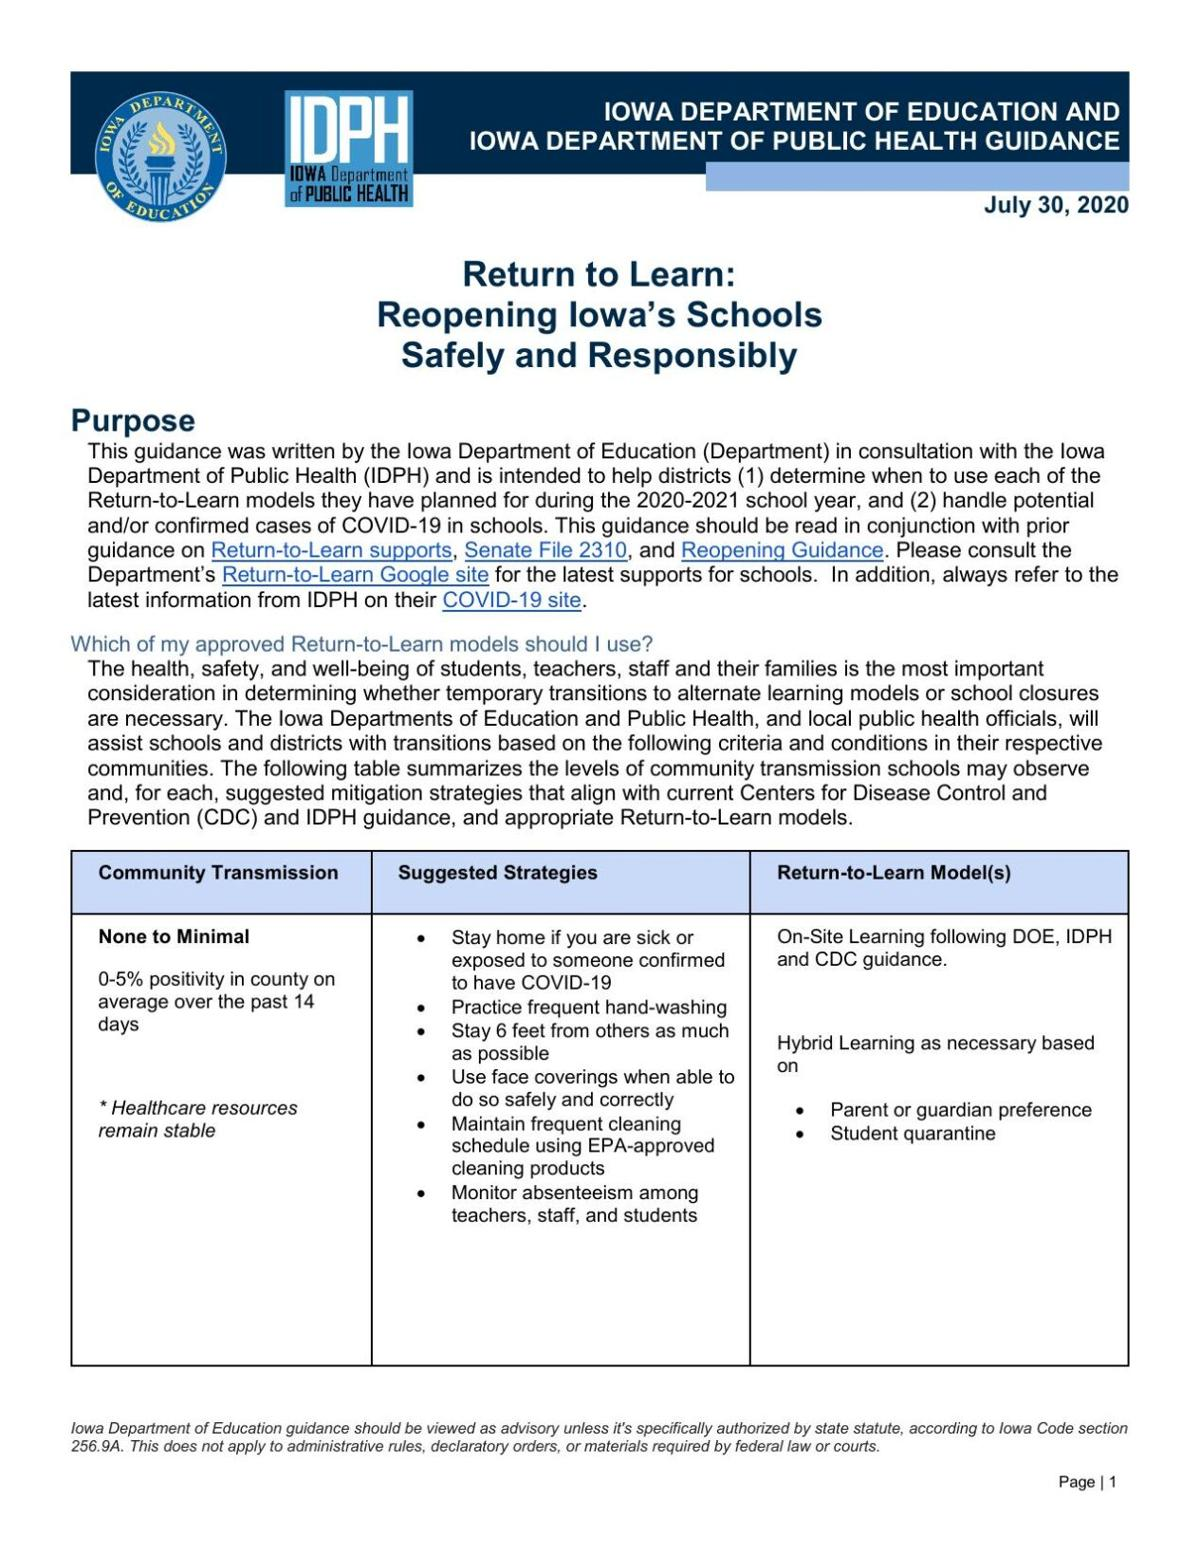 State Return-to-Learn guidelines